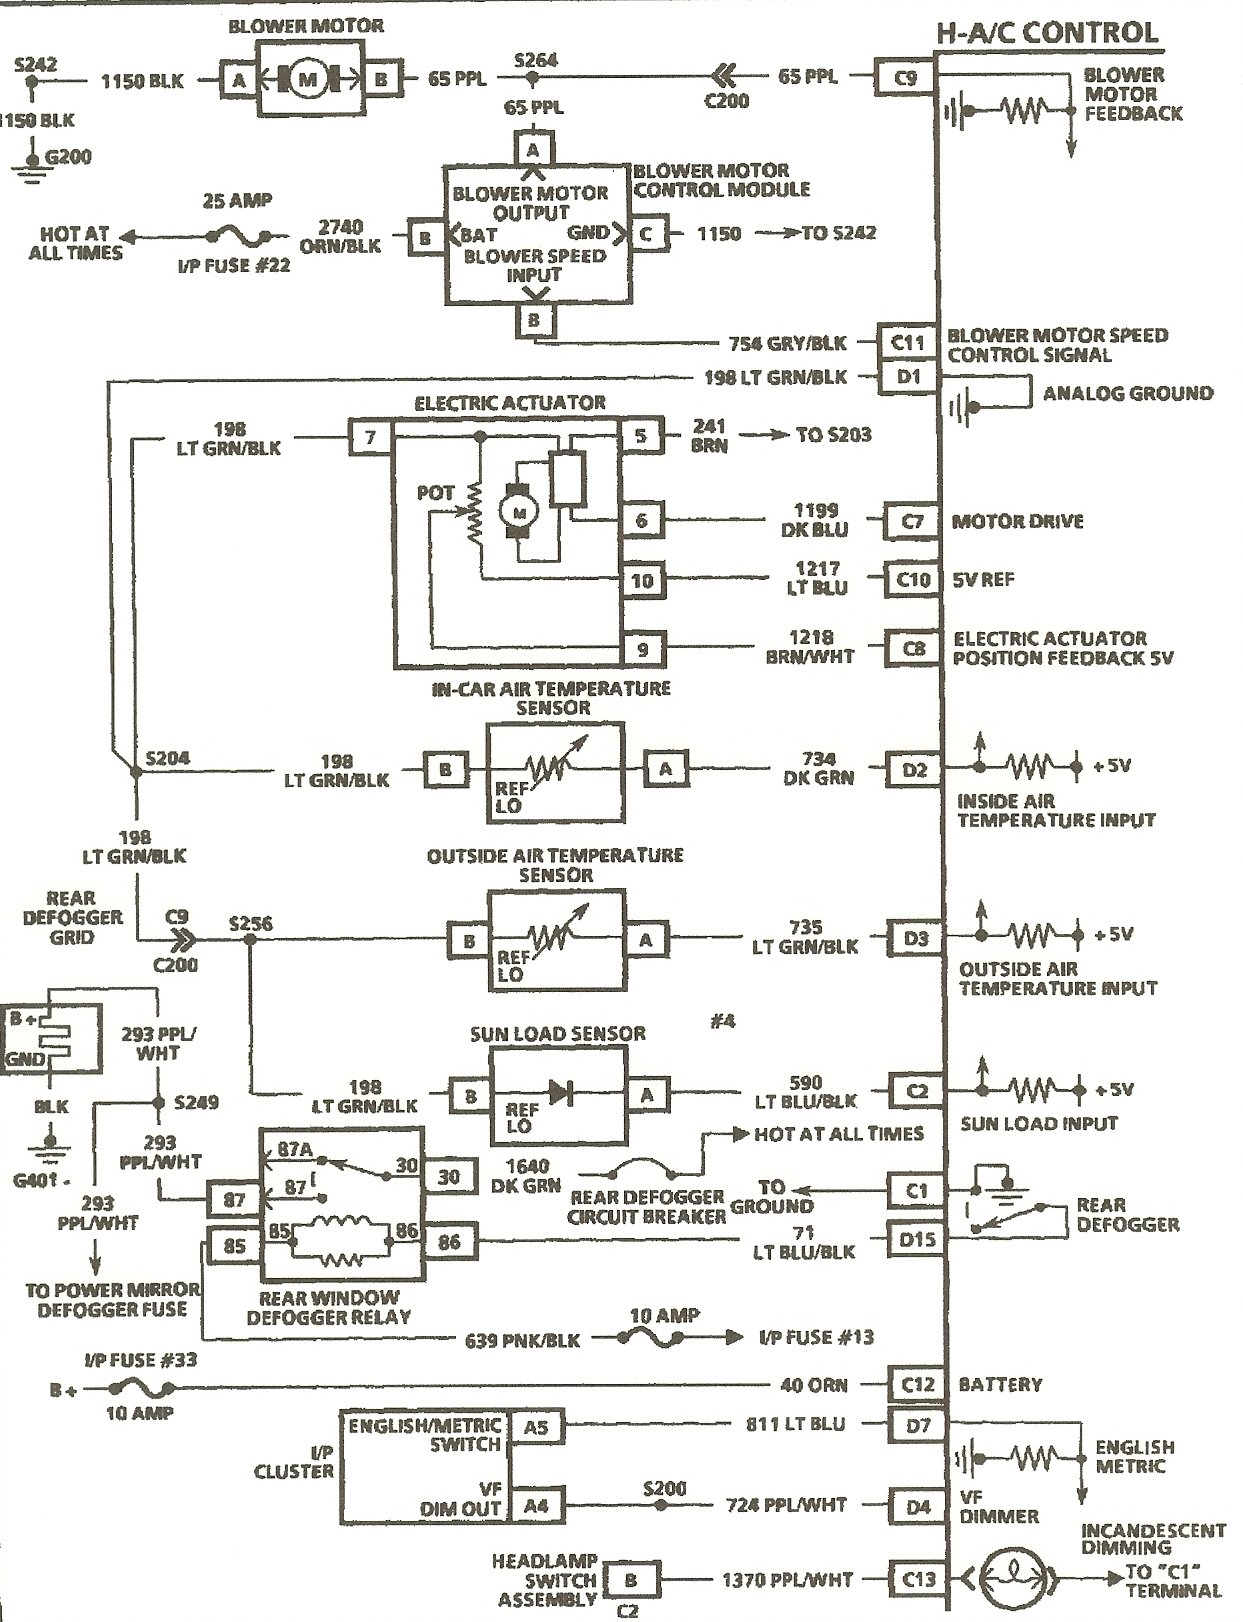 2003 Acura 3 2 Tl Cooling System Diagram Electrical Wiring 1994 Cadillac Fleetwood Cylinder Head Installation Headlight 1996 Integra